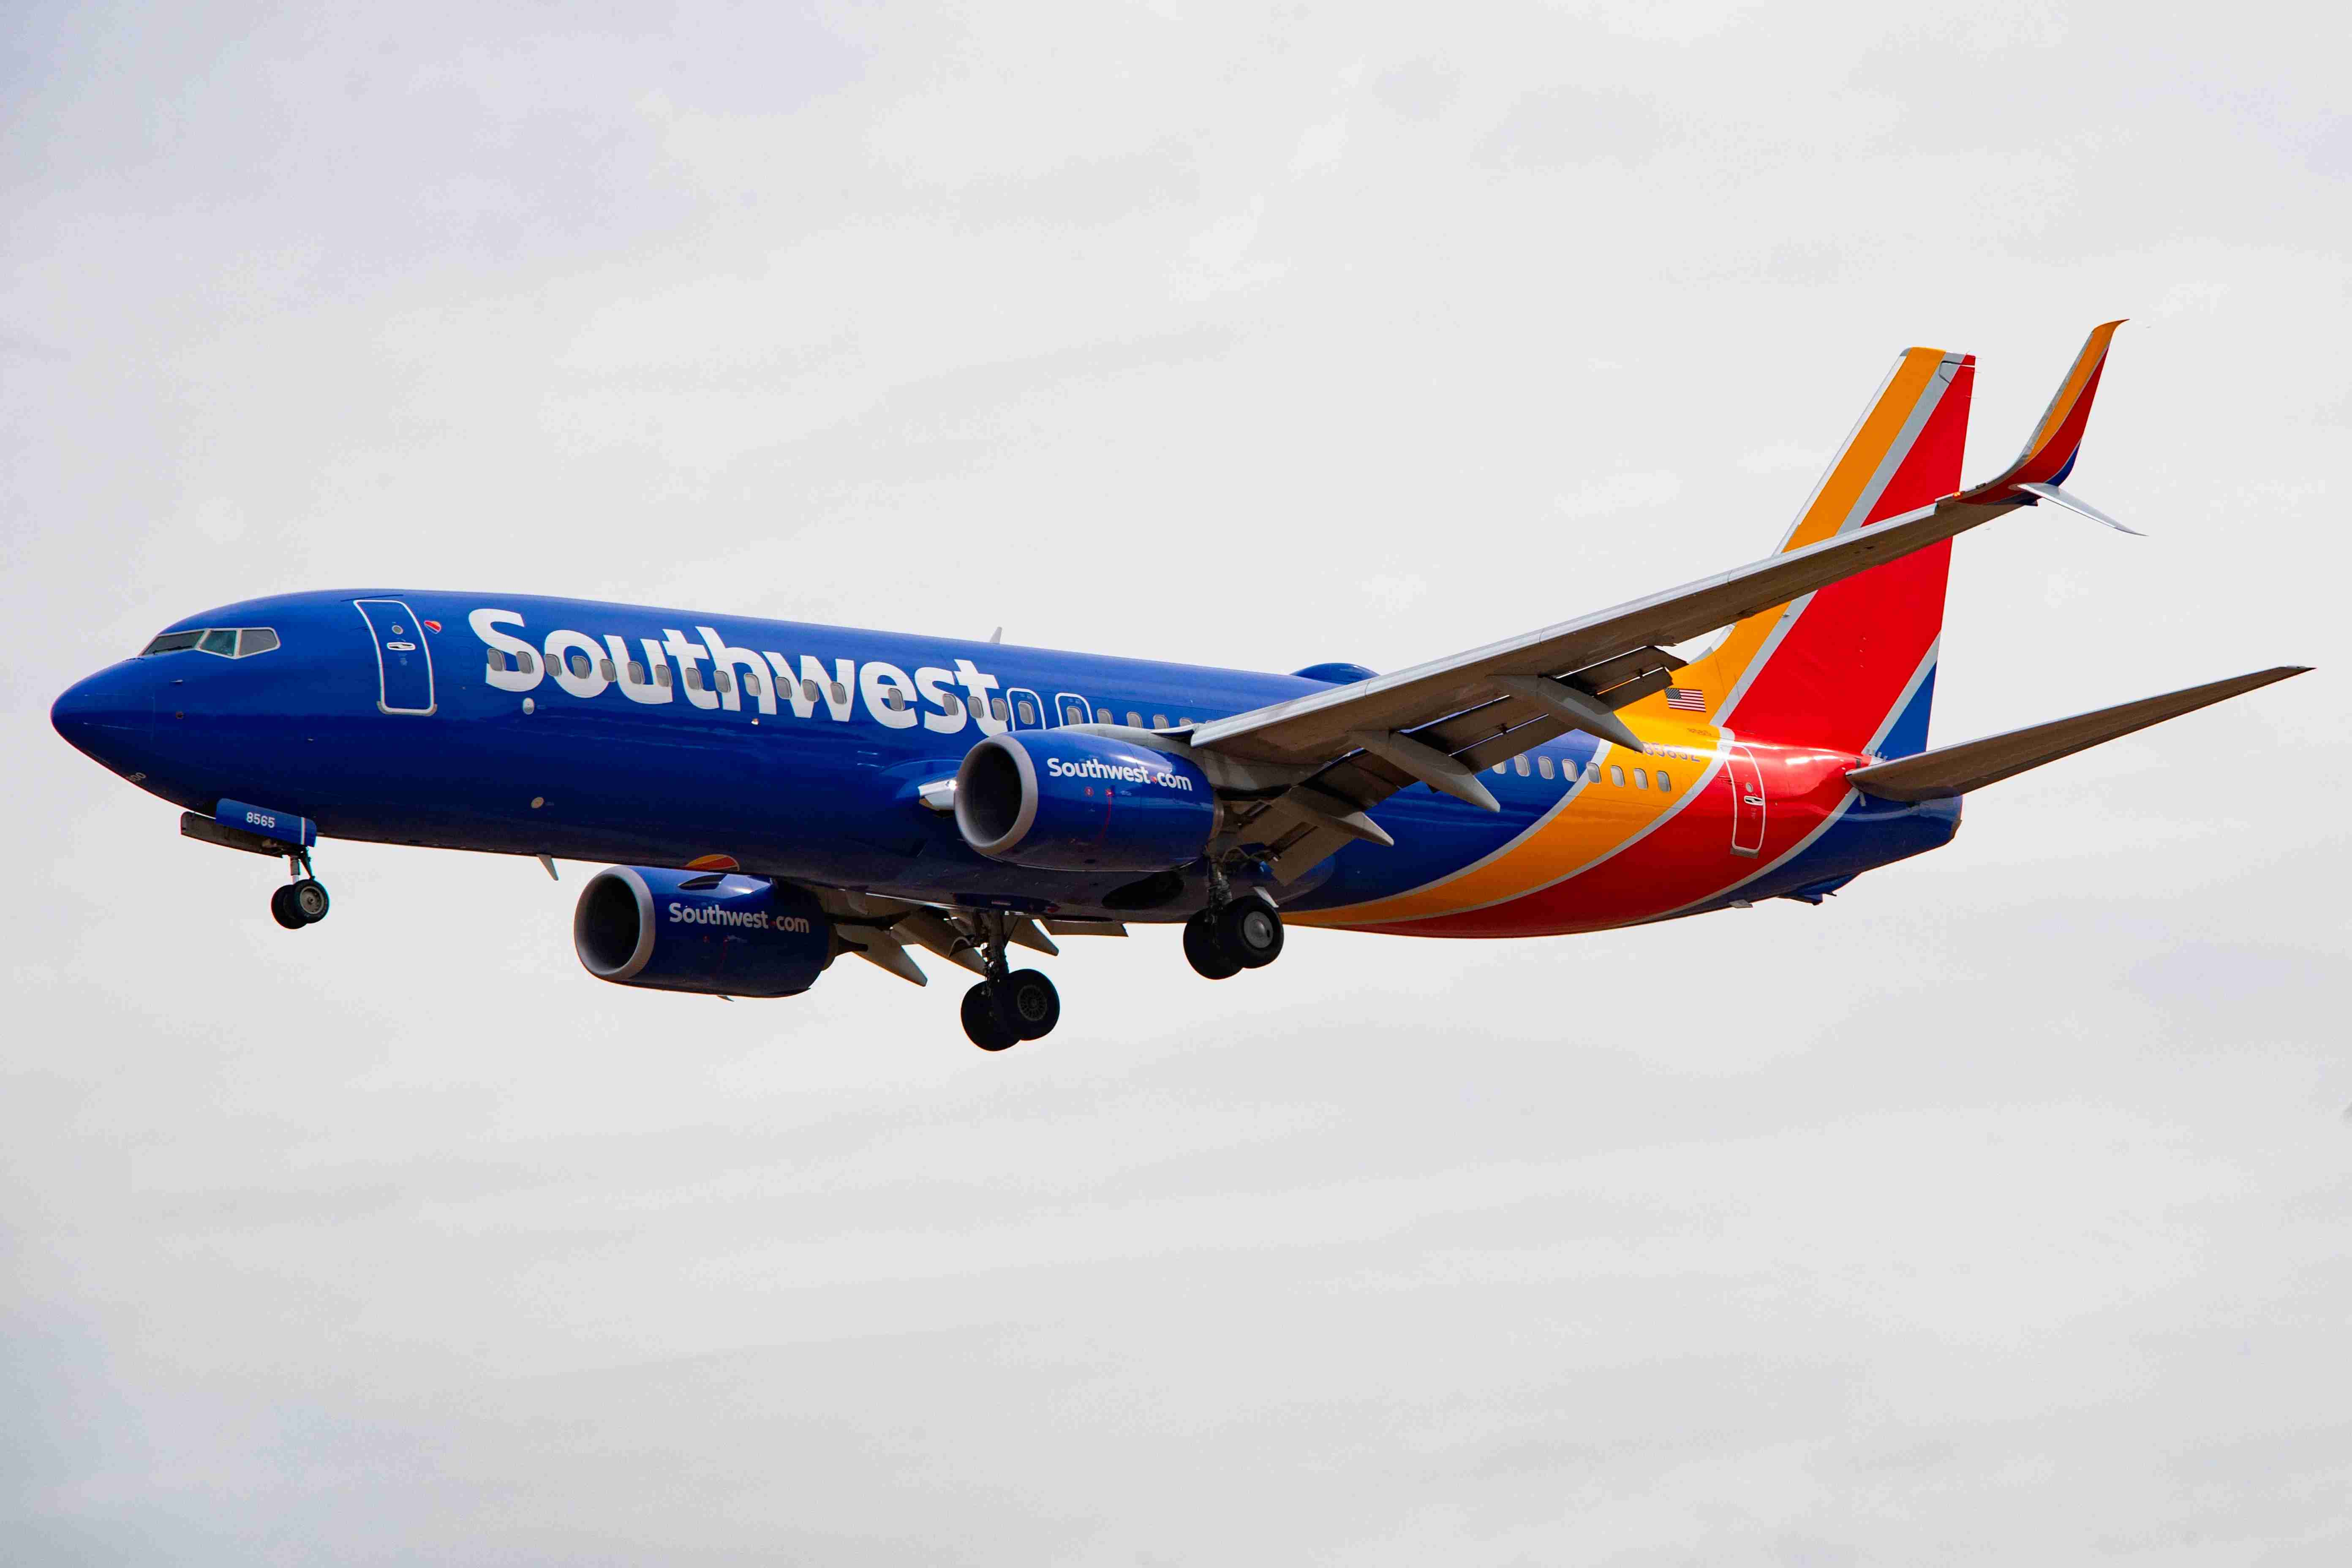 A Southwest Airlines Boeing 737-800 at Baltimore/Washington International Airport on March 11, 2019. (Photo by Jim Watson/ AFP)